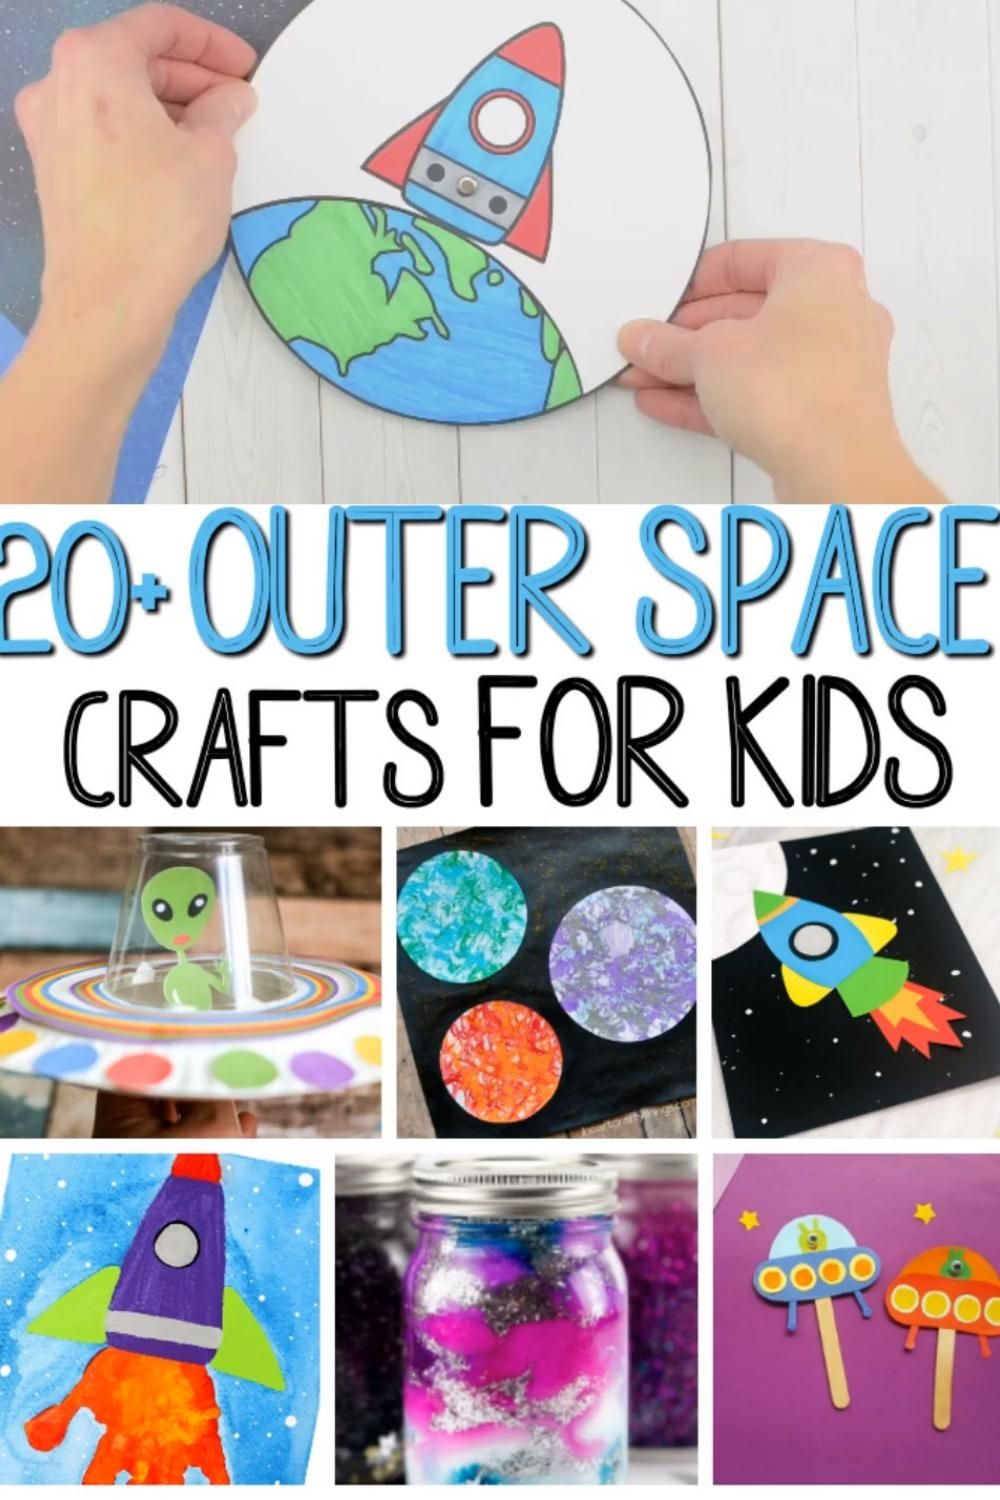 Do you have a little astronaut who loves all things space? Then do I have a fun round up of amazing space crafts for you! This is a fantastic  round up of 20+ Outer Space Crafts For Kids that are out of this world!  #craftsforkids #spacecraftsforkids #outerspacecraftsforkids